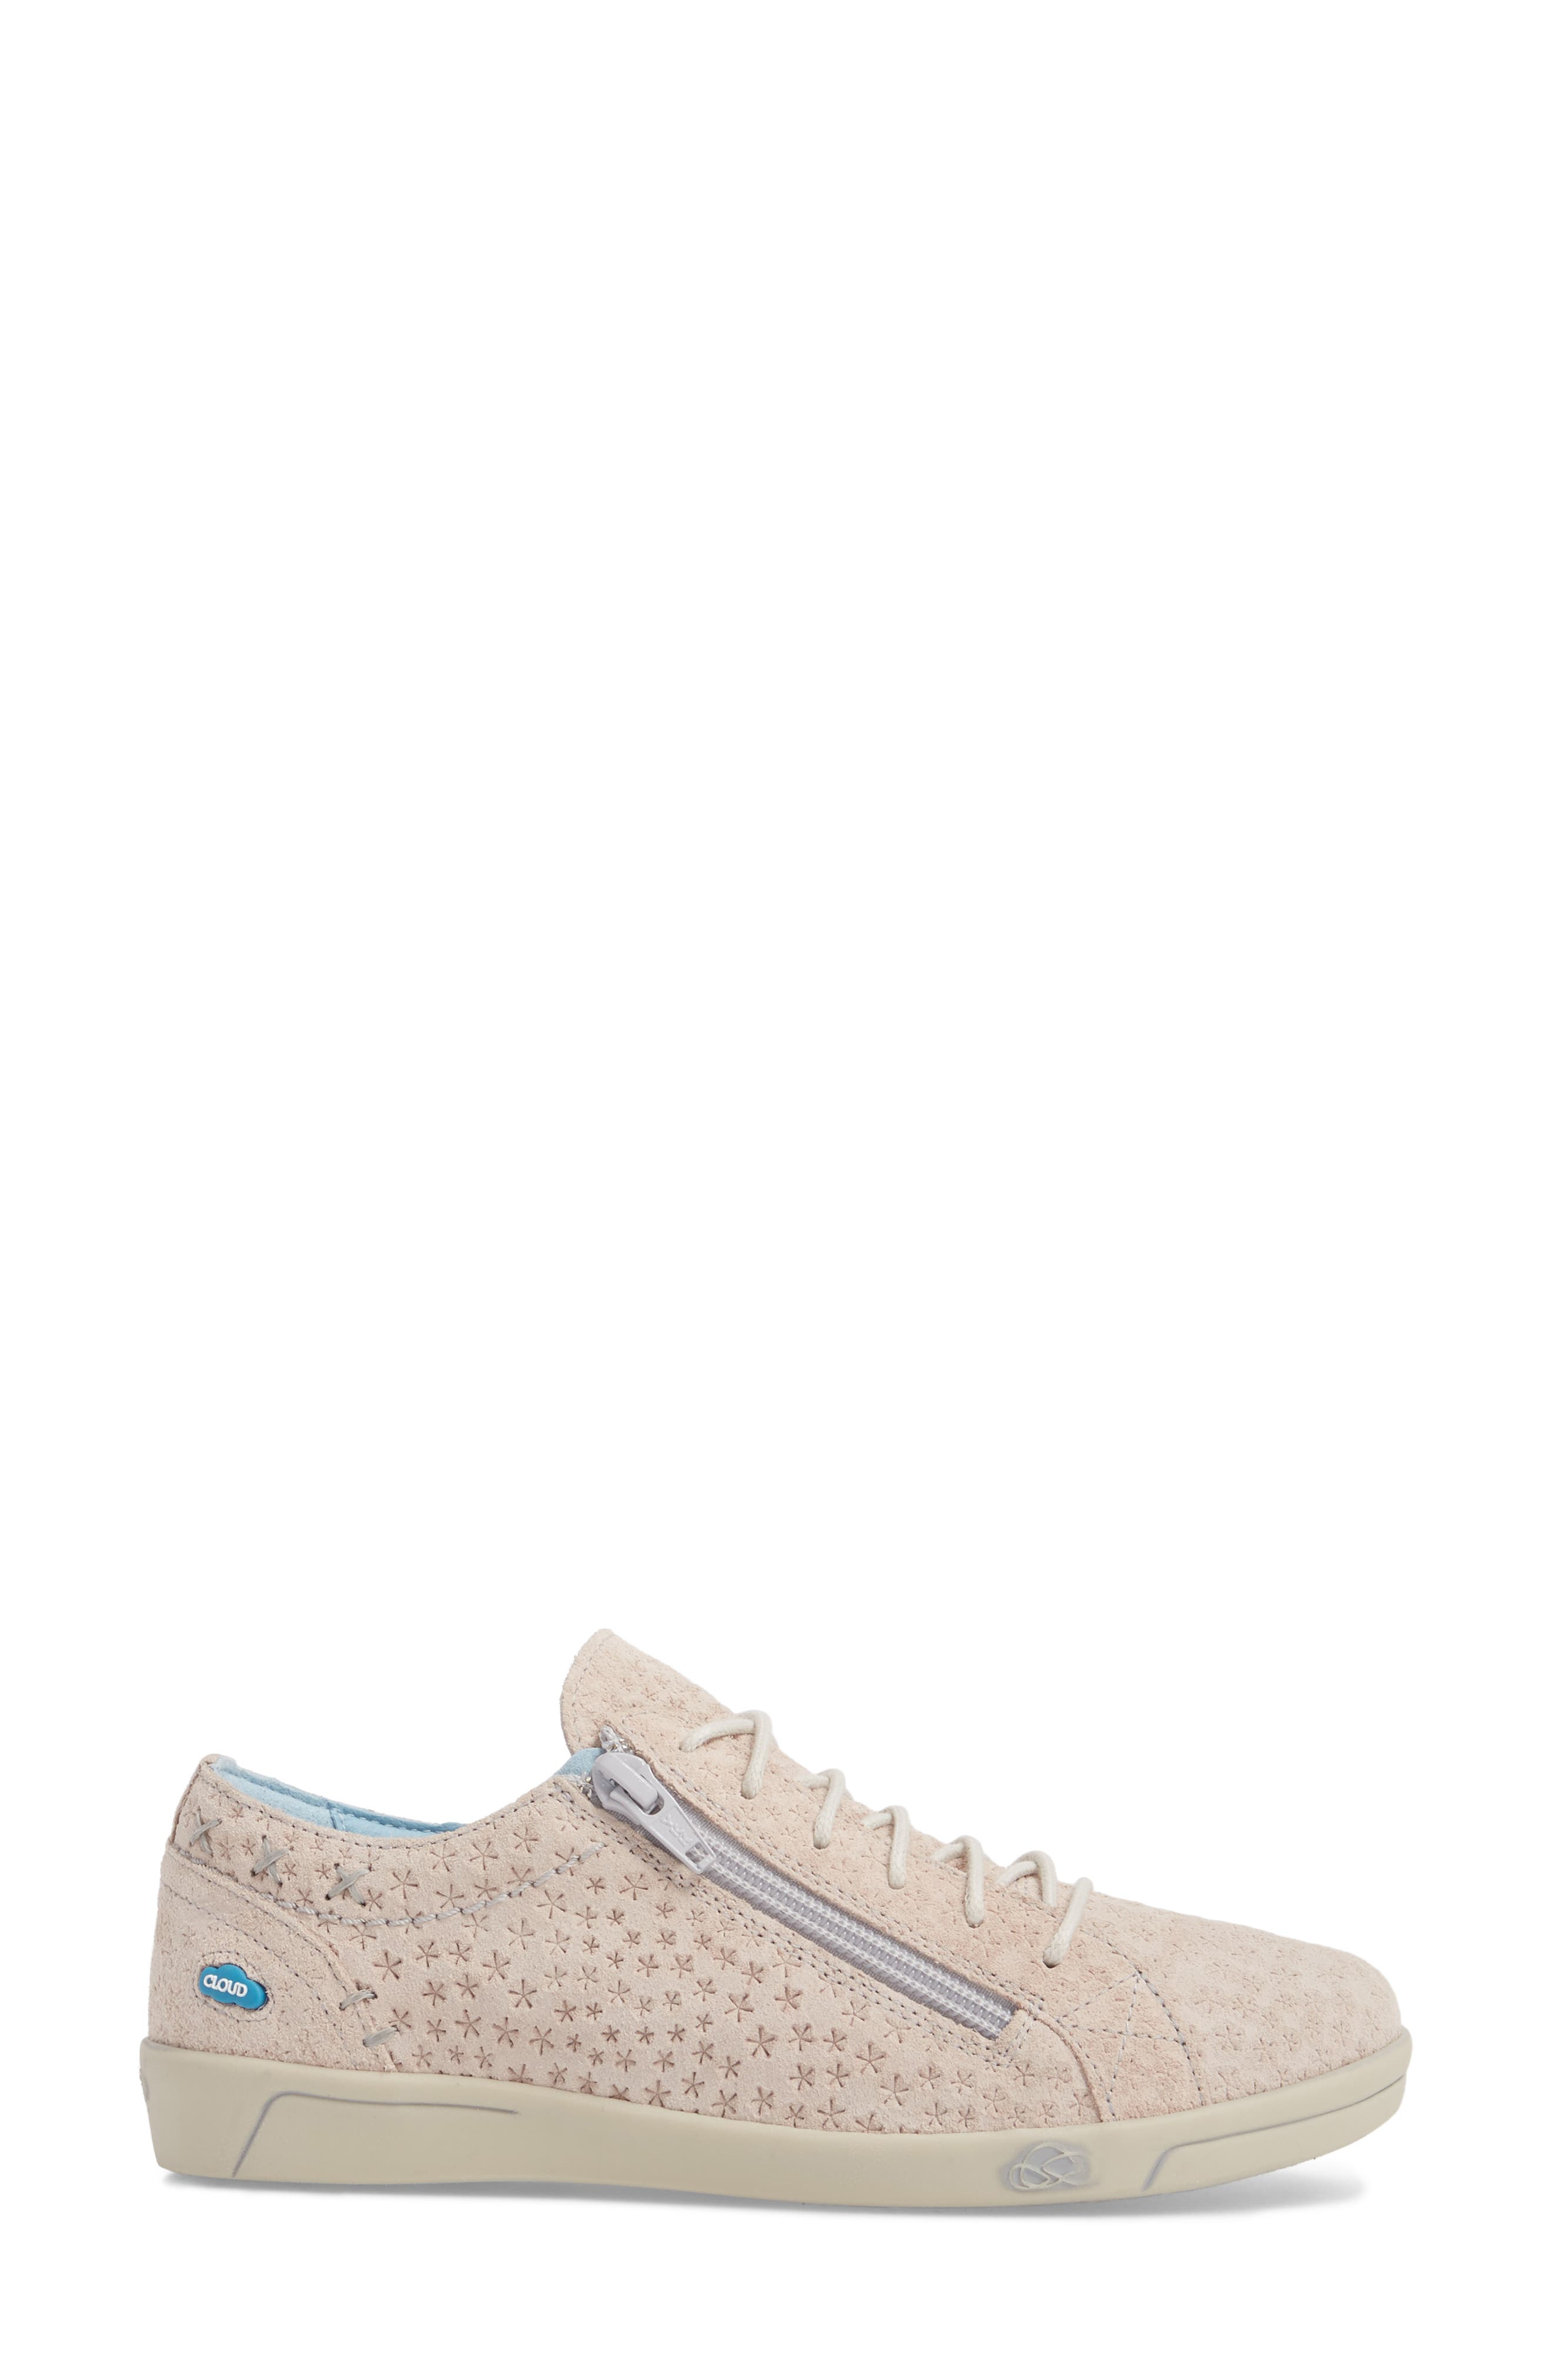 Aika Star Perforated Sneaker,                             Alternate thumbnail 3, color,                             Light Pink Leather